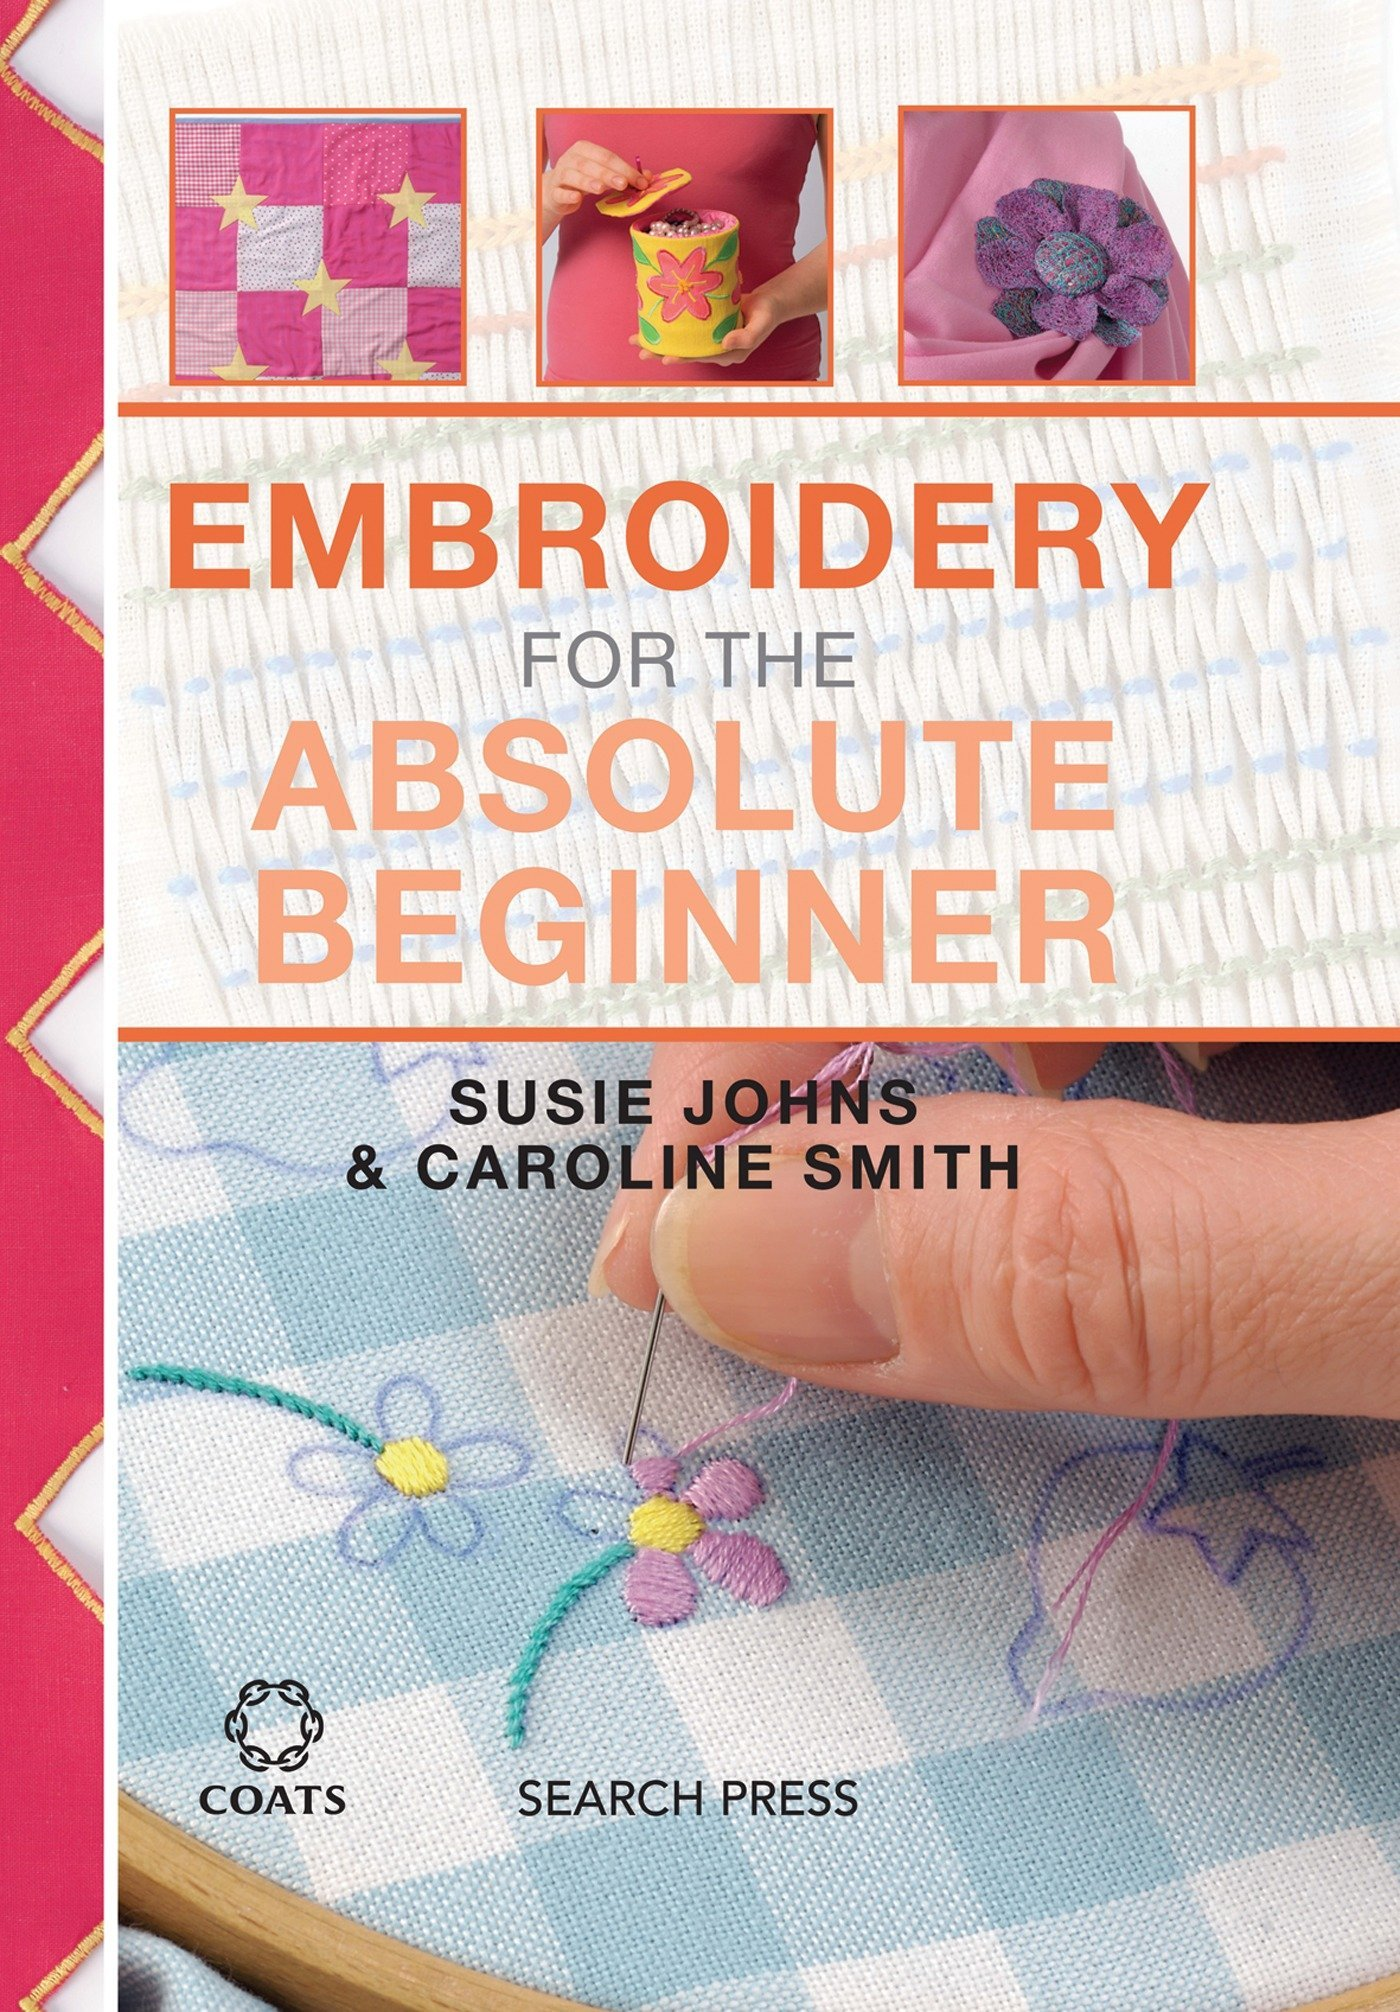 Buy Embroidery for the Absolute Beginner (Absolute Beginner Craft) Book  Online at Low Prices in India | Embroidery for the Absolute Beginner  (Absolute ...